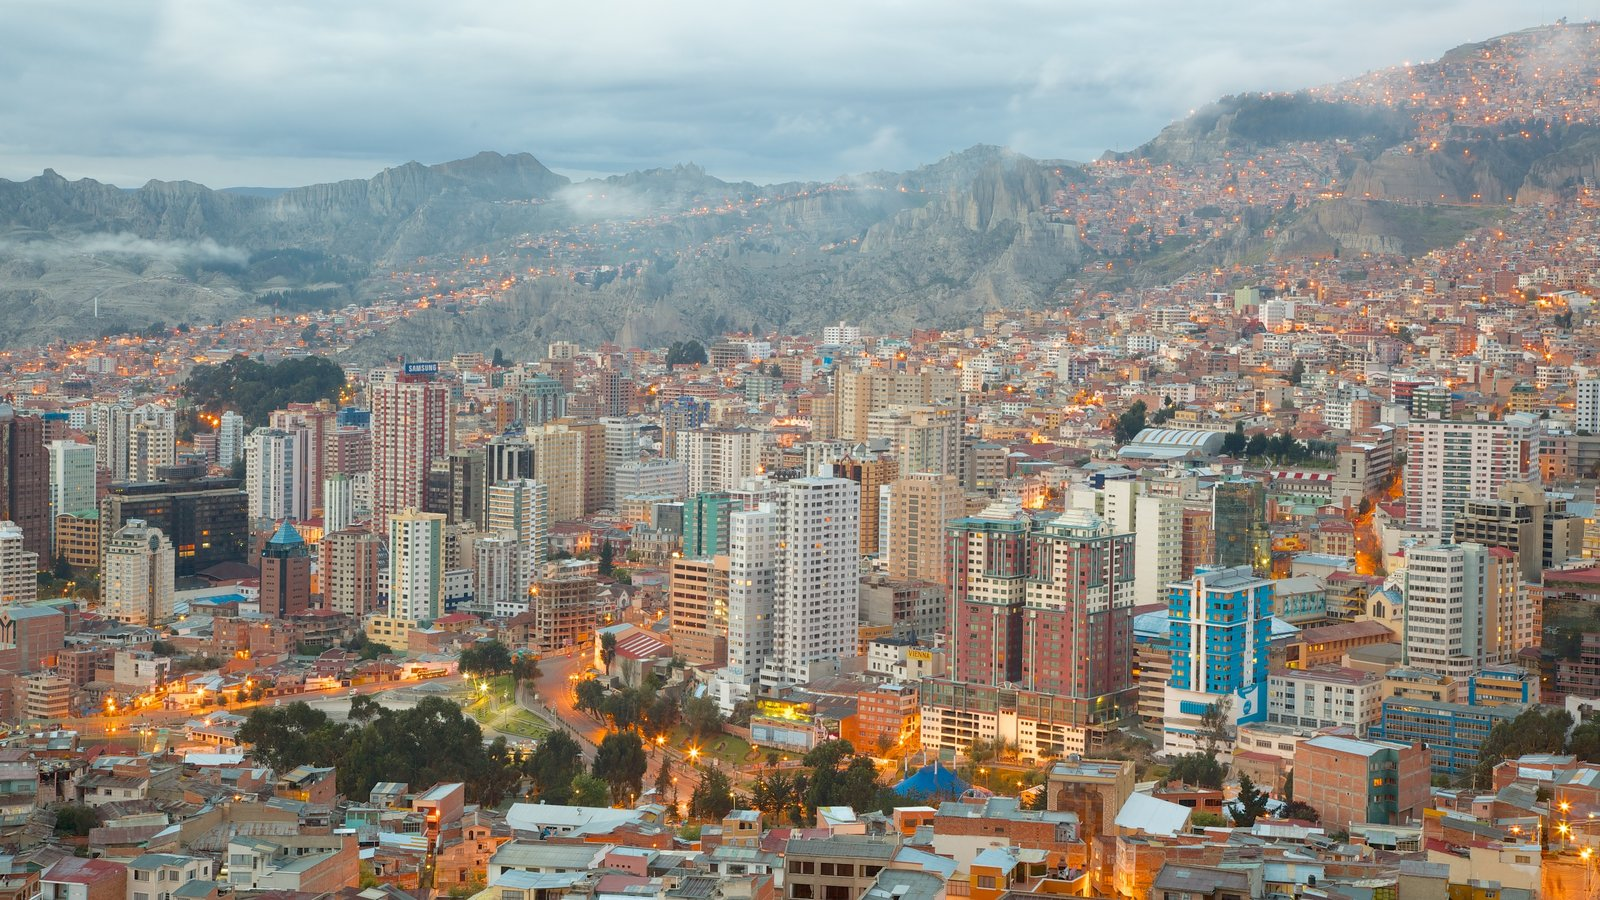 La Paz which includes a skyscraper and a city